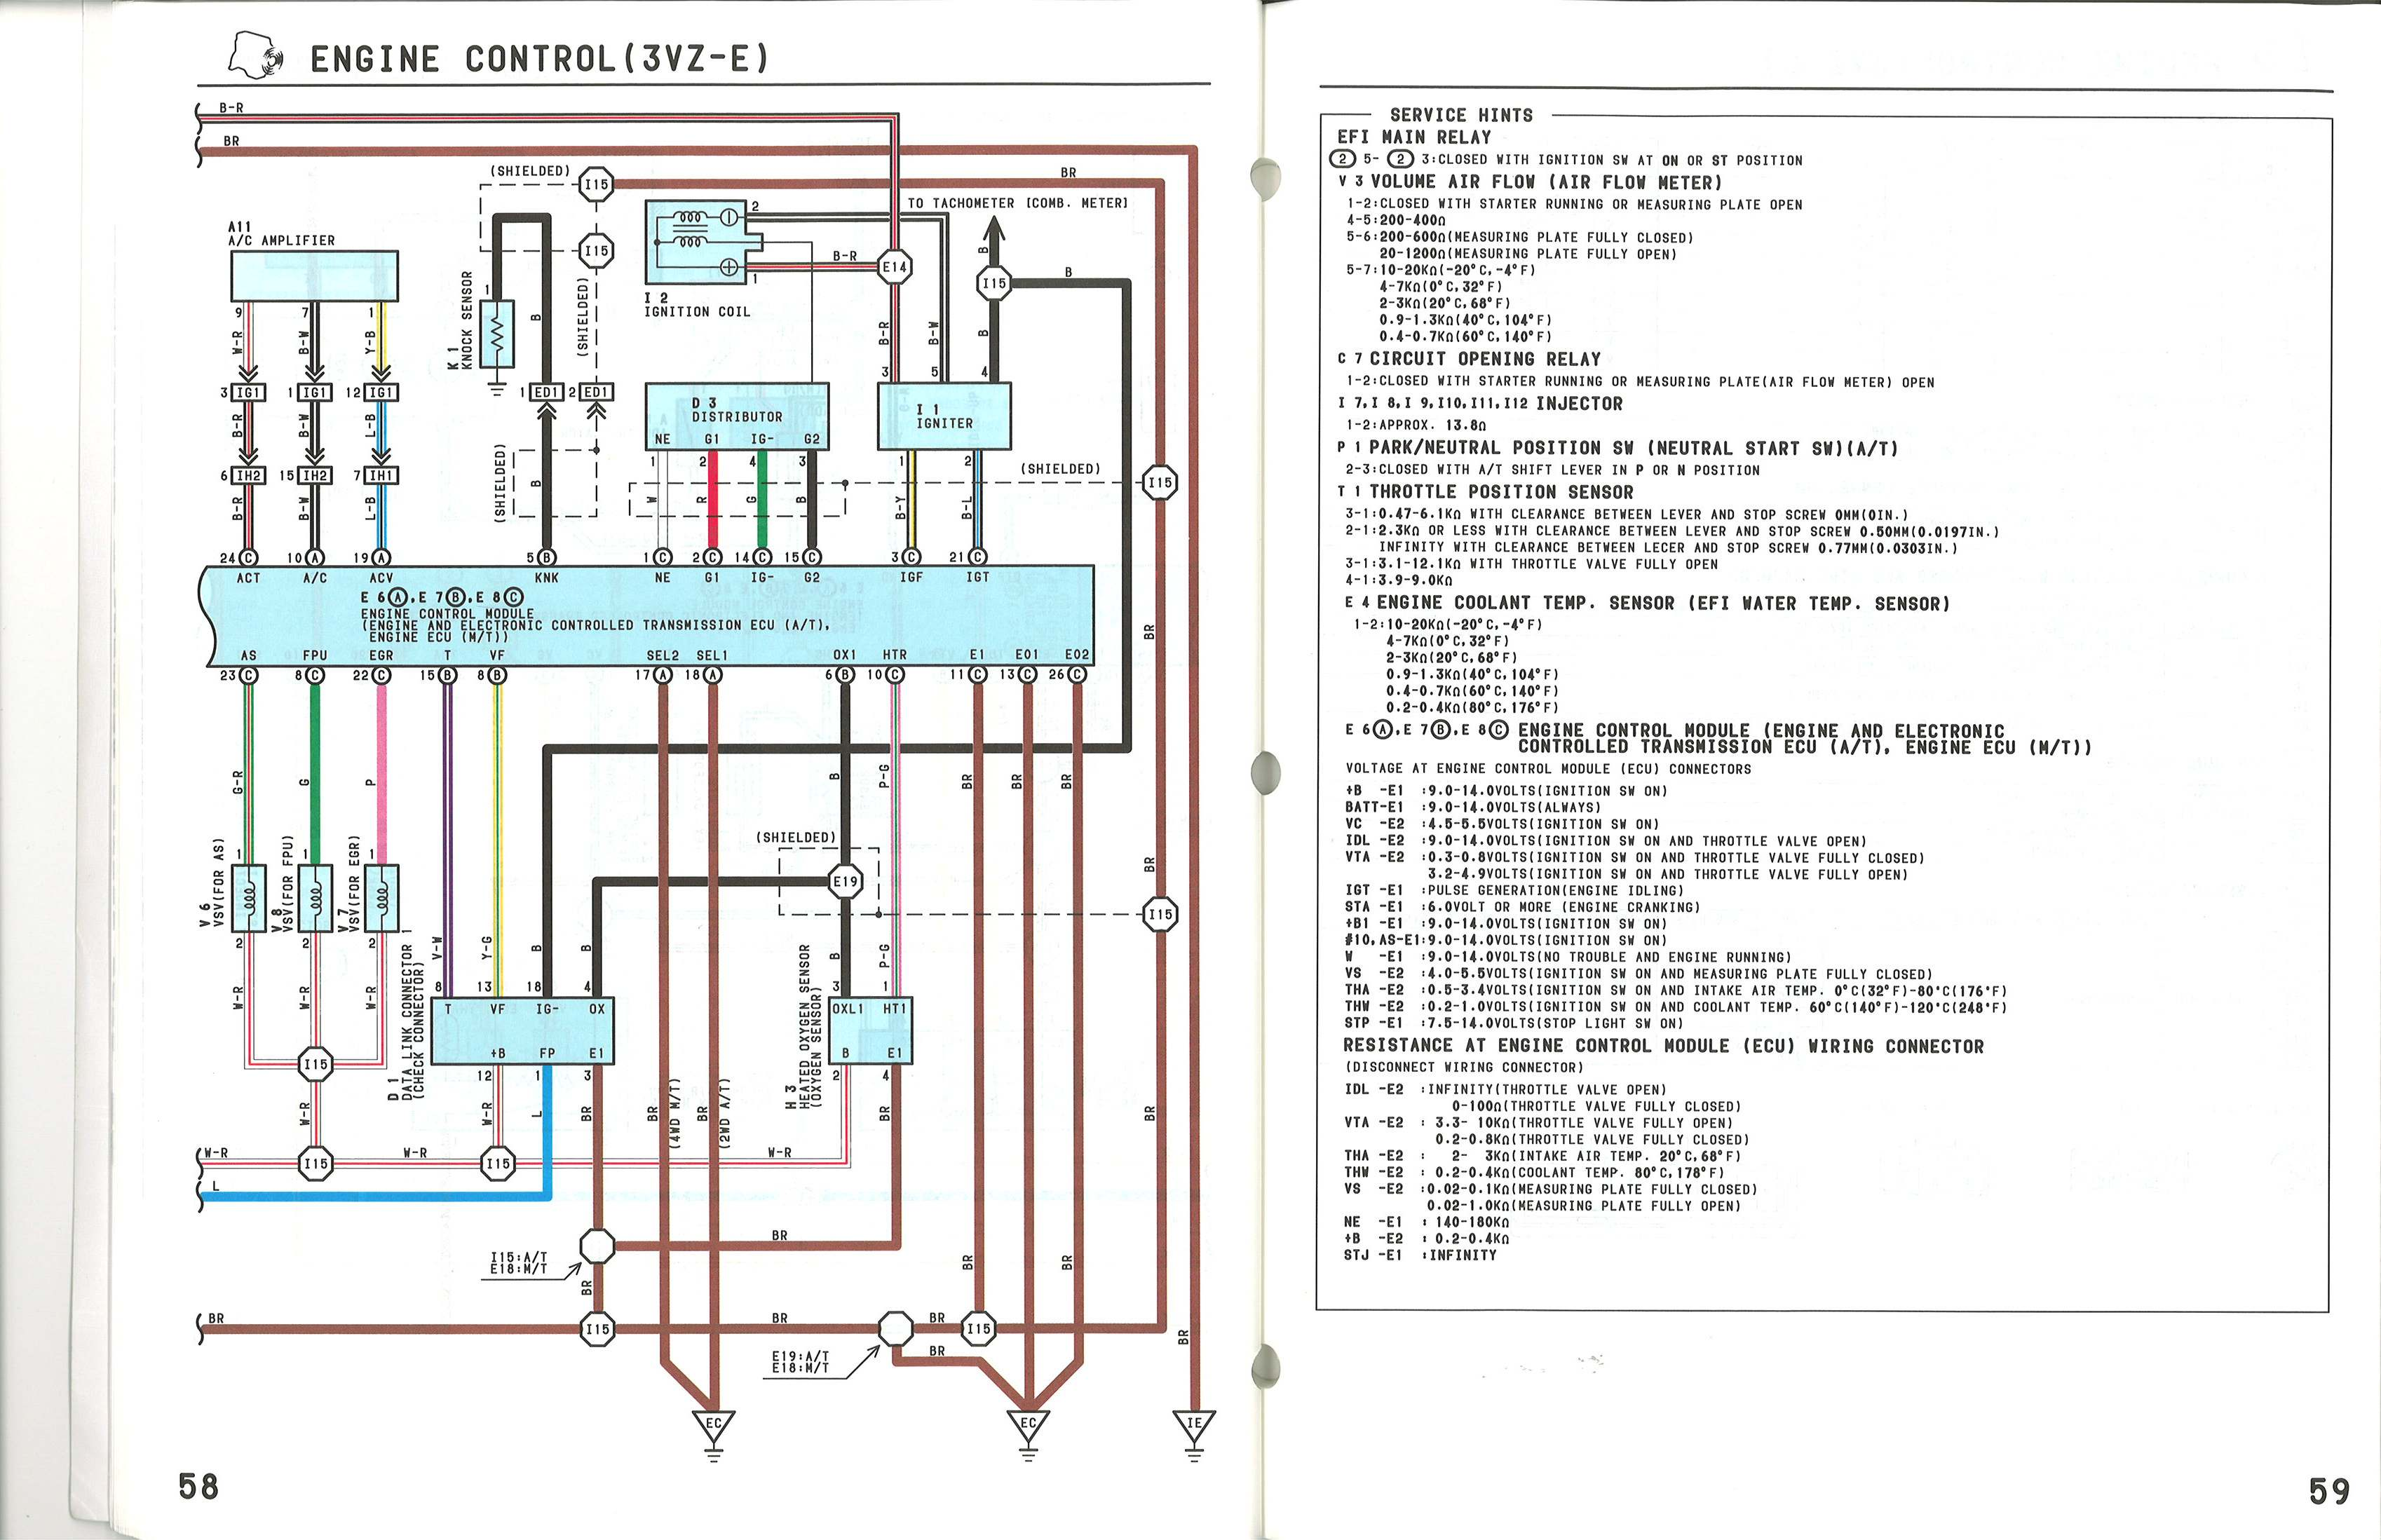 Nissan Pickup Z24 Engine Wiring Diagram Get Free Image About Wiring on toyota pickup carburetor diagram, toyota pickup fuel line diagram, toyota pickup fuel system diagram, toyota pickup clutch diagram, toyota pickup wiring harness, toyota pickup engine diagram, toyota pickup steering diagram, toyota pickup ignition coil, toyota pickup ignition switch, toyota pickup fuse box diagram, toyota pickup transmission diagram, toyota pickup fuel pump relay diagram, toyota pickup a/c diagram,